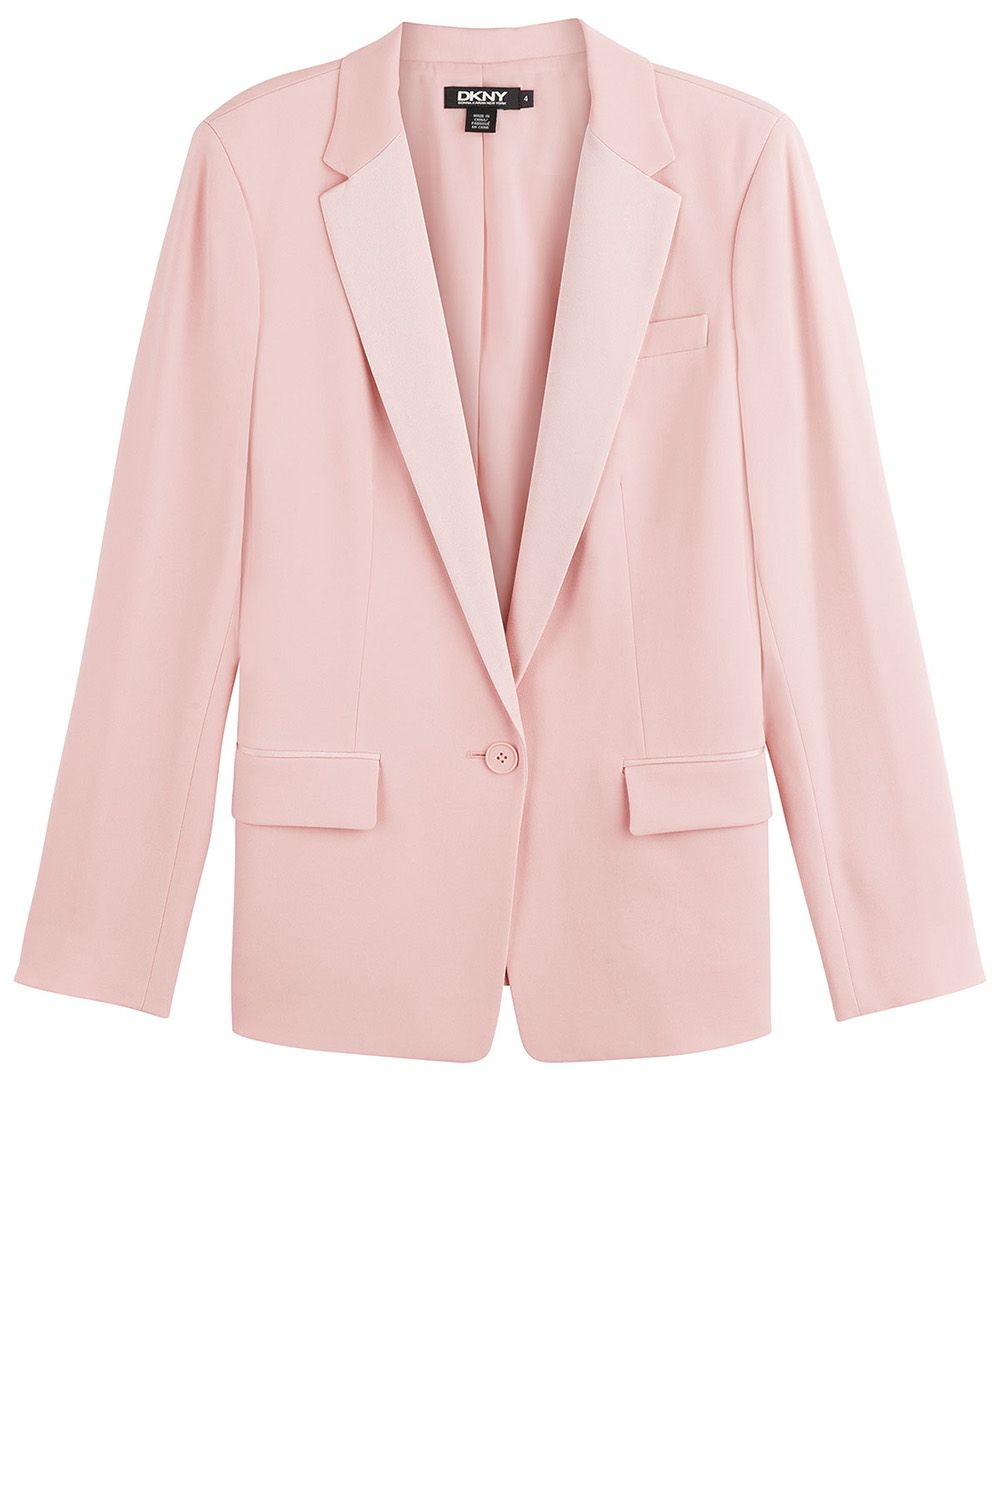 "<strong>DKNY</strong> blazer, $445, <a href=""http://www.stylebop.com/product_details.php?menu1=clothing&menu2=6&id=594232"">stylebop.com</a>."